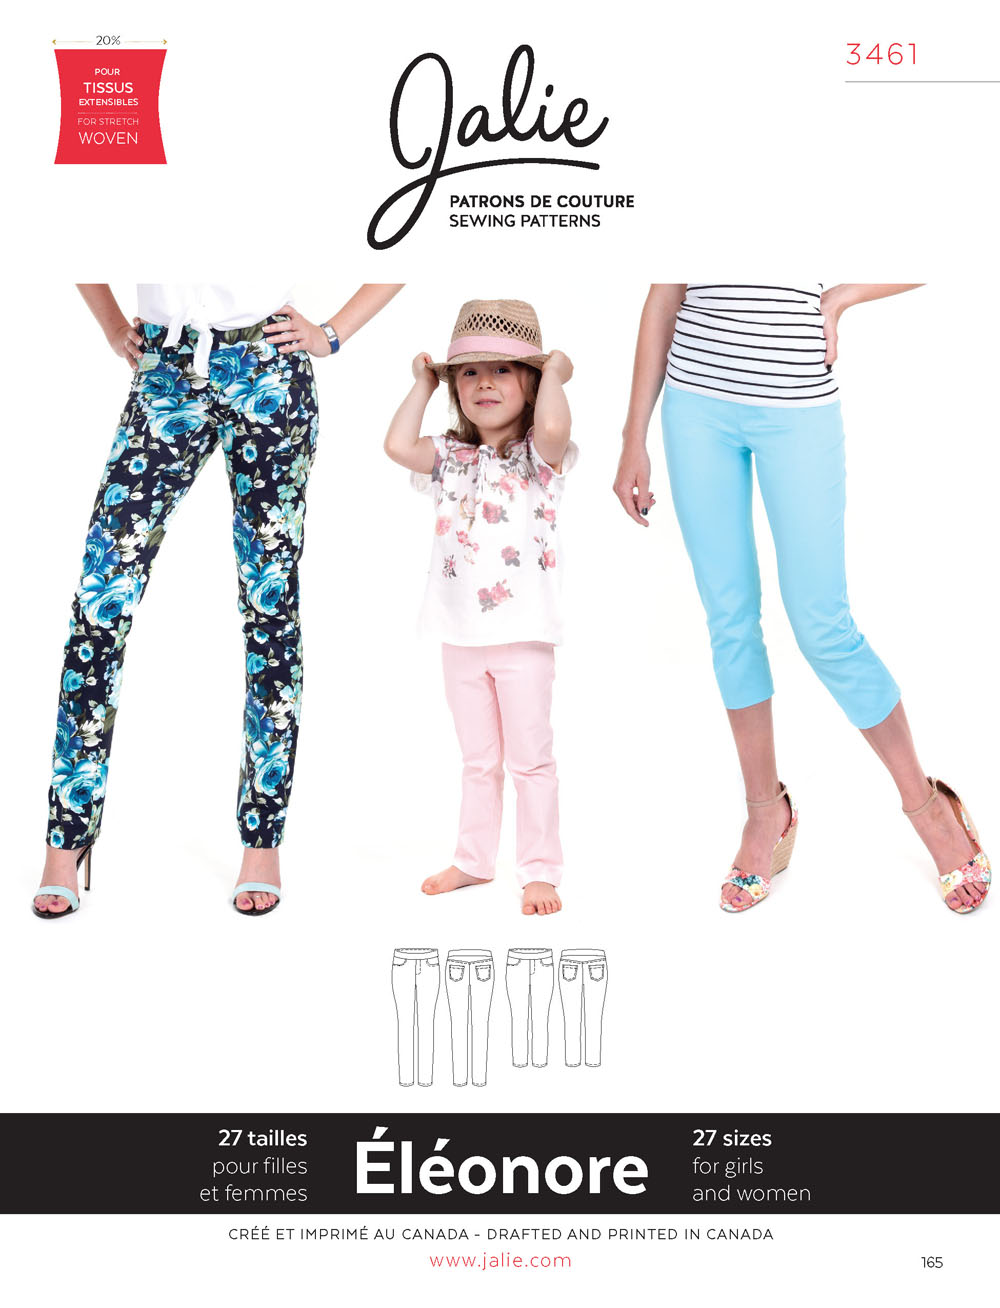 Best-Selling Indie Sewing Patterns 10/8/16 - PatternReview.com Blog